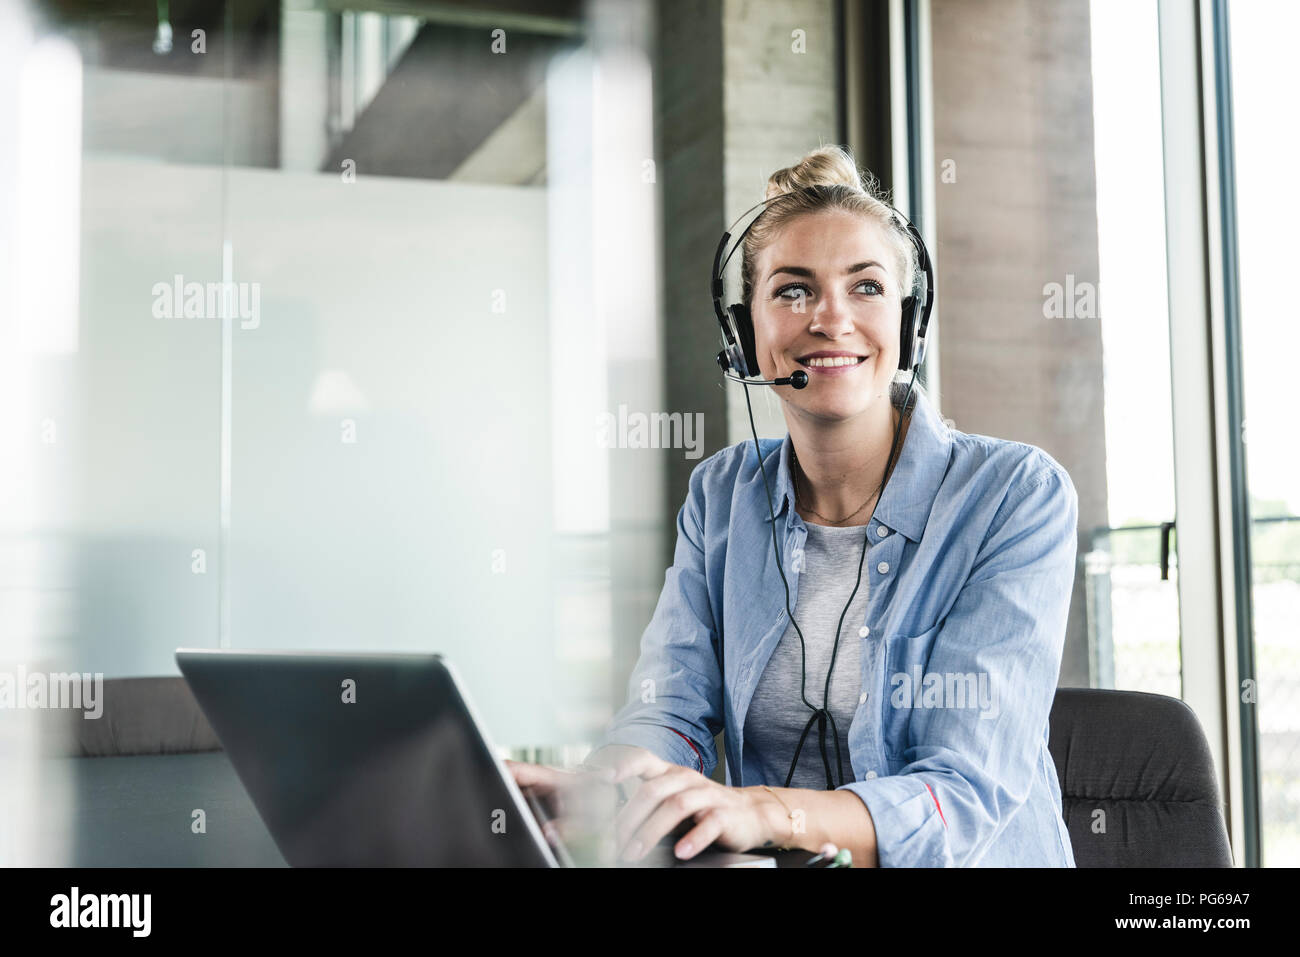 Young businesswoman sitting at desk, making a call, using headset and laptop - Stock Image